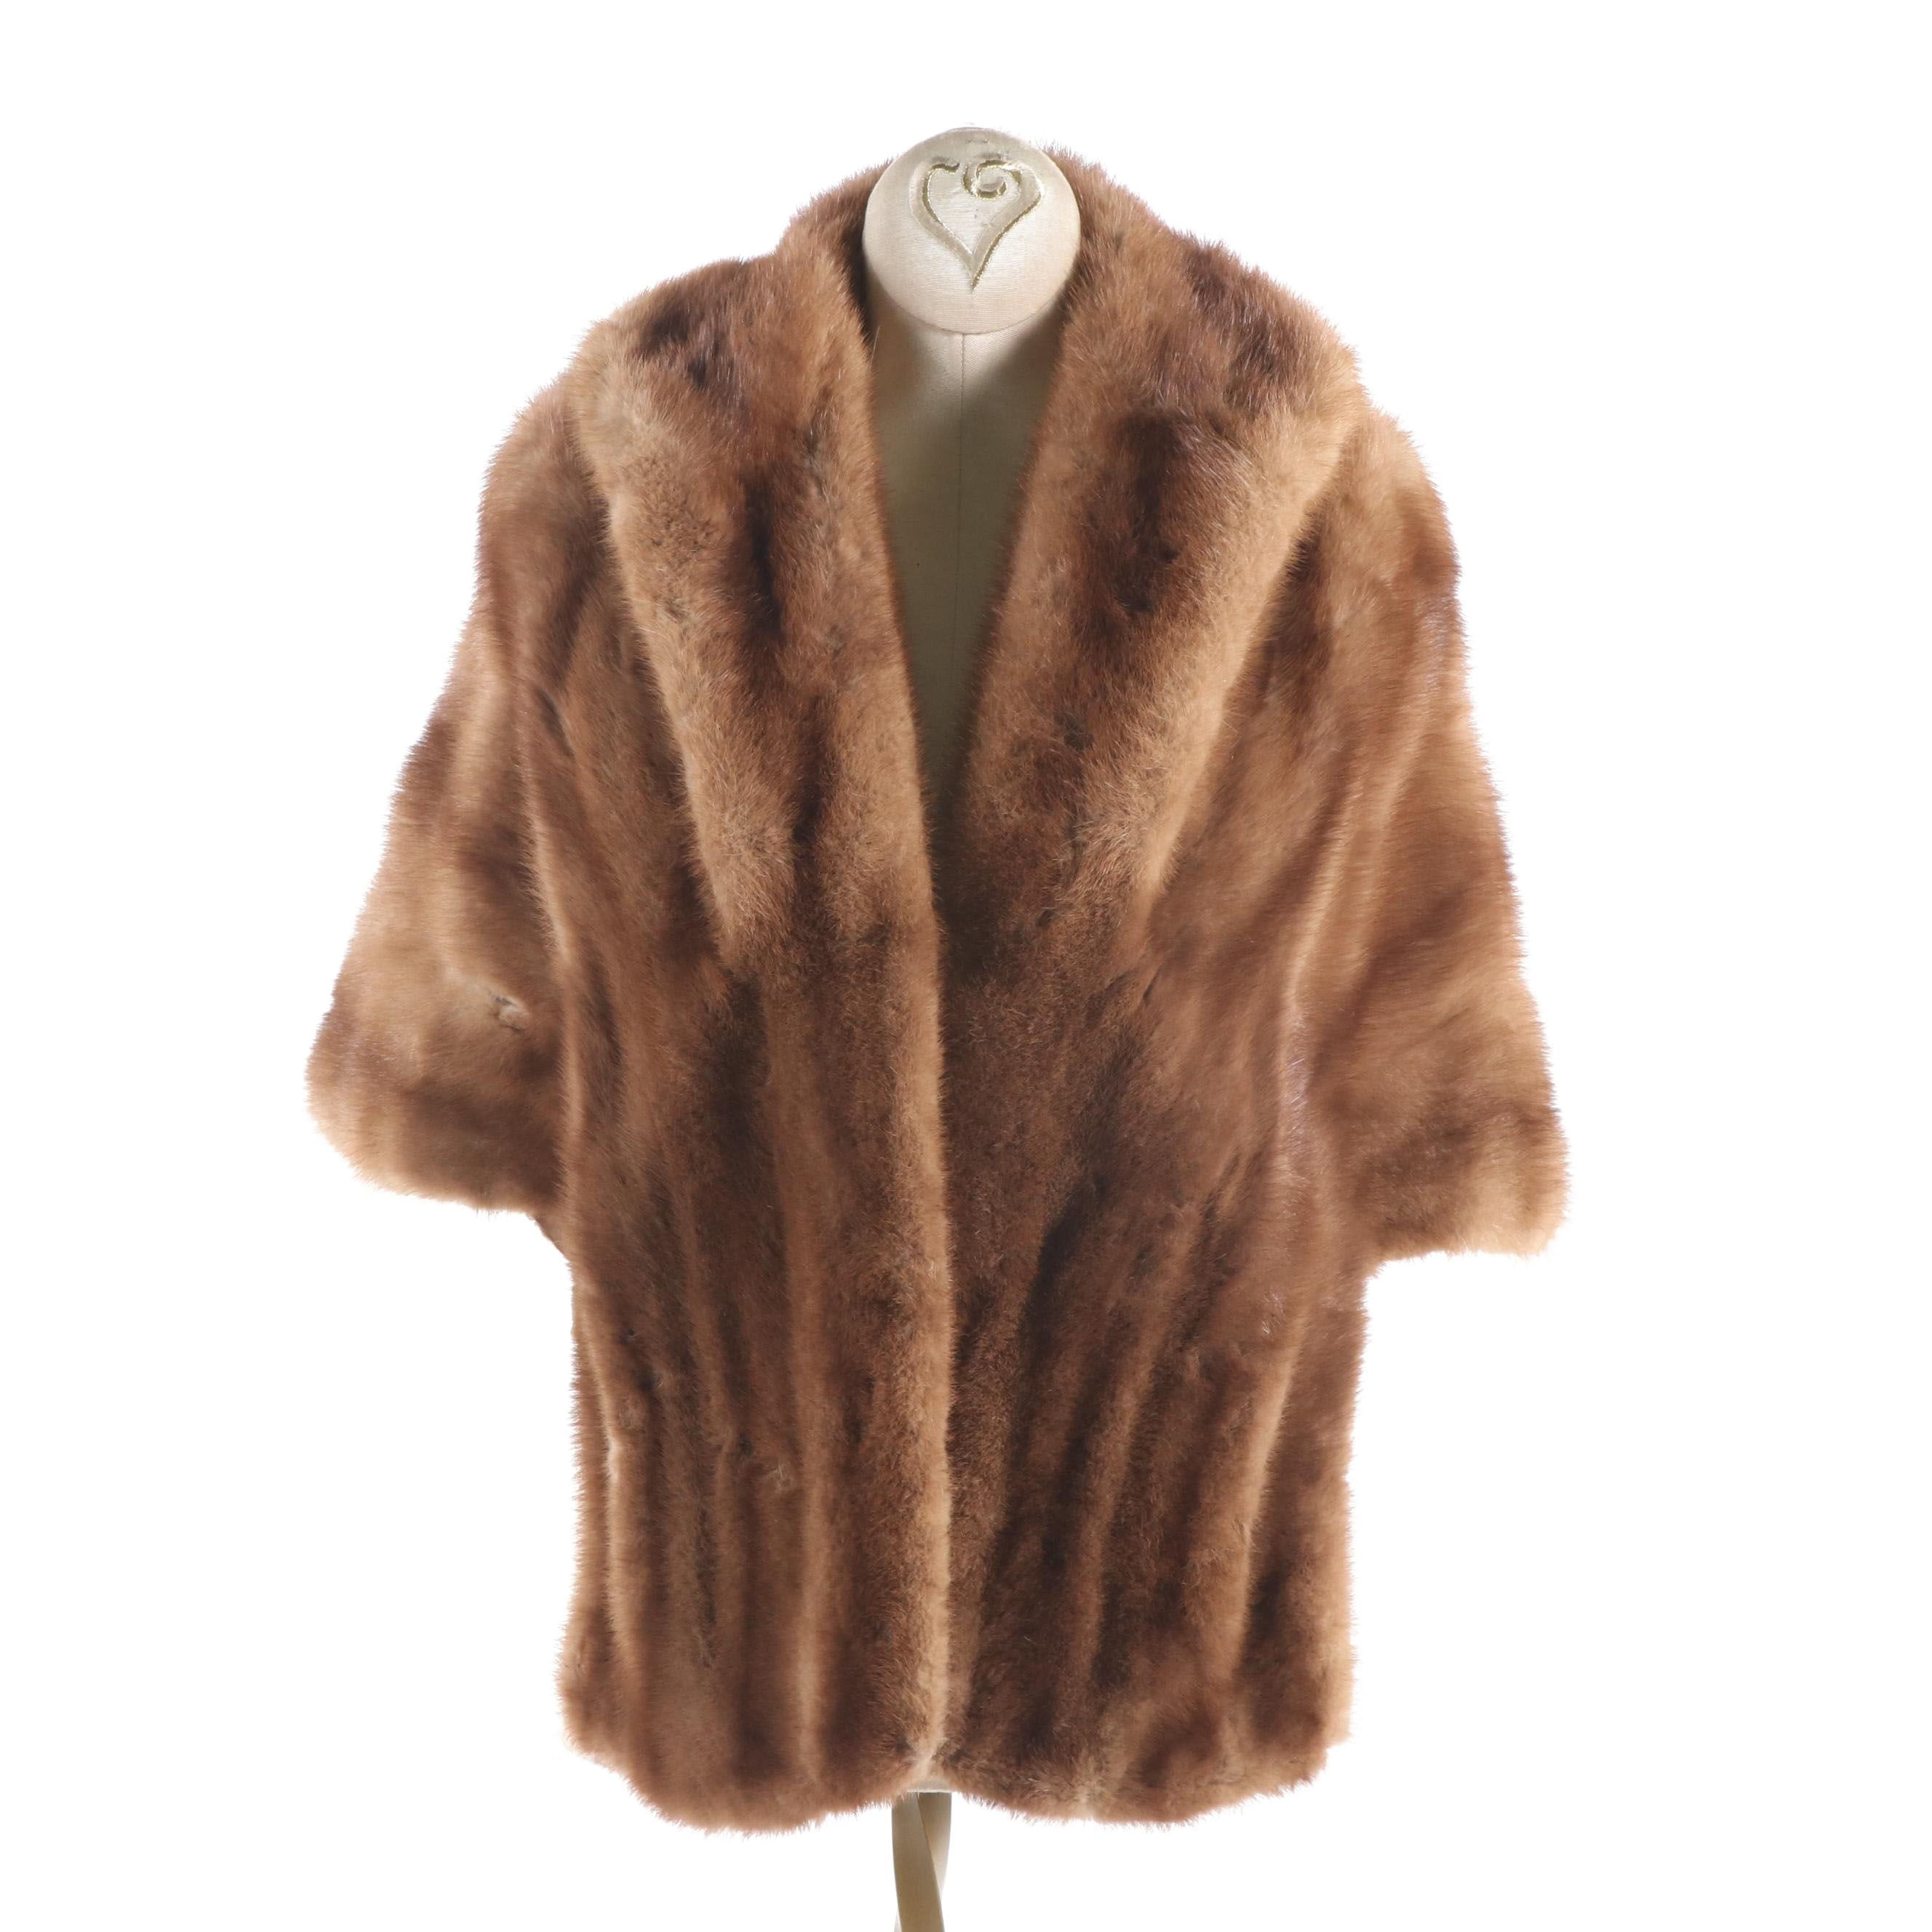 Women's Levy's of Memphis Natural Mink Fur Stole, Vintage